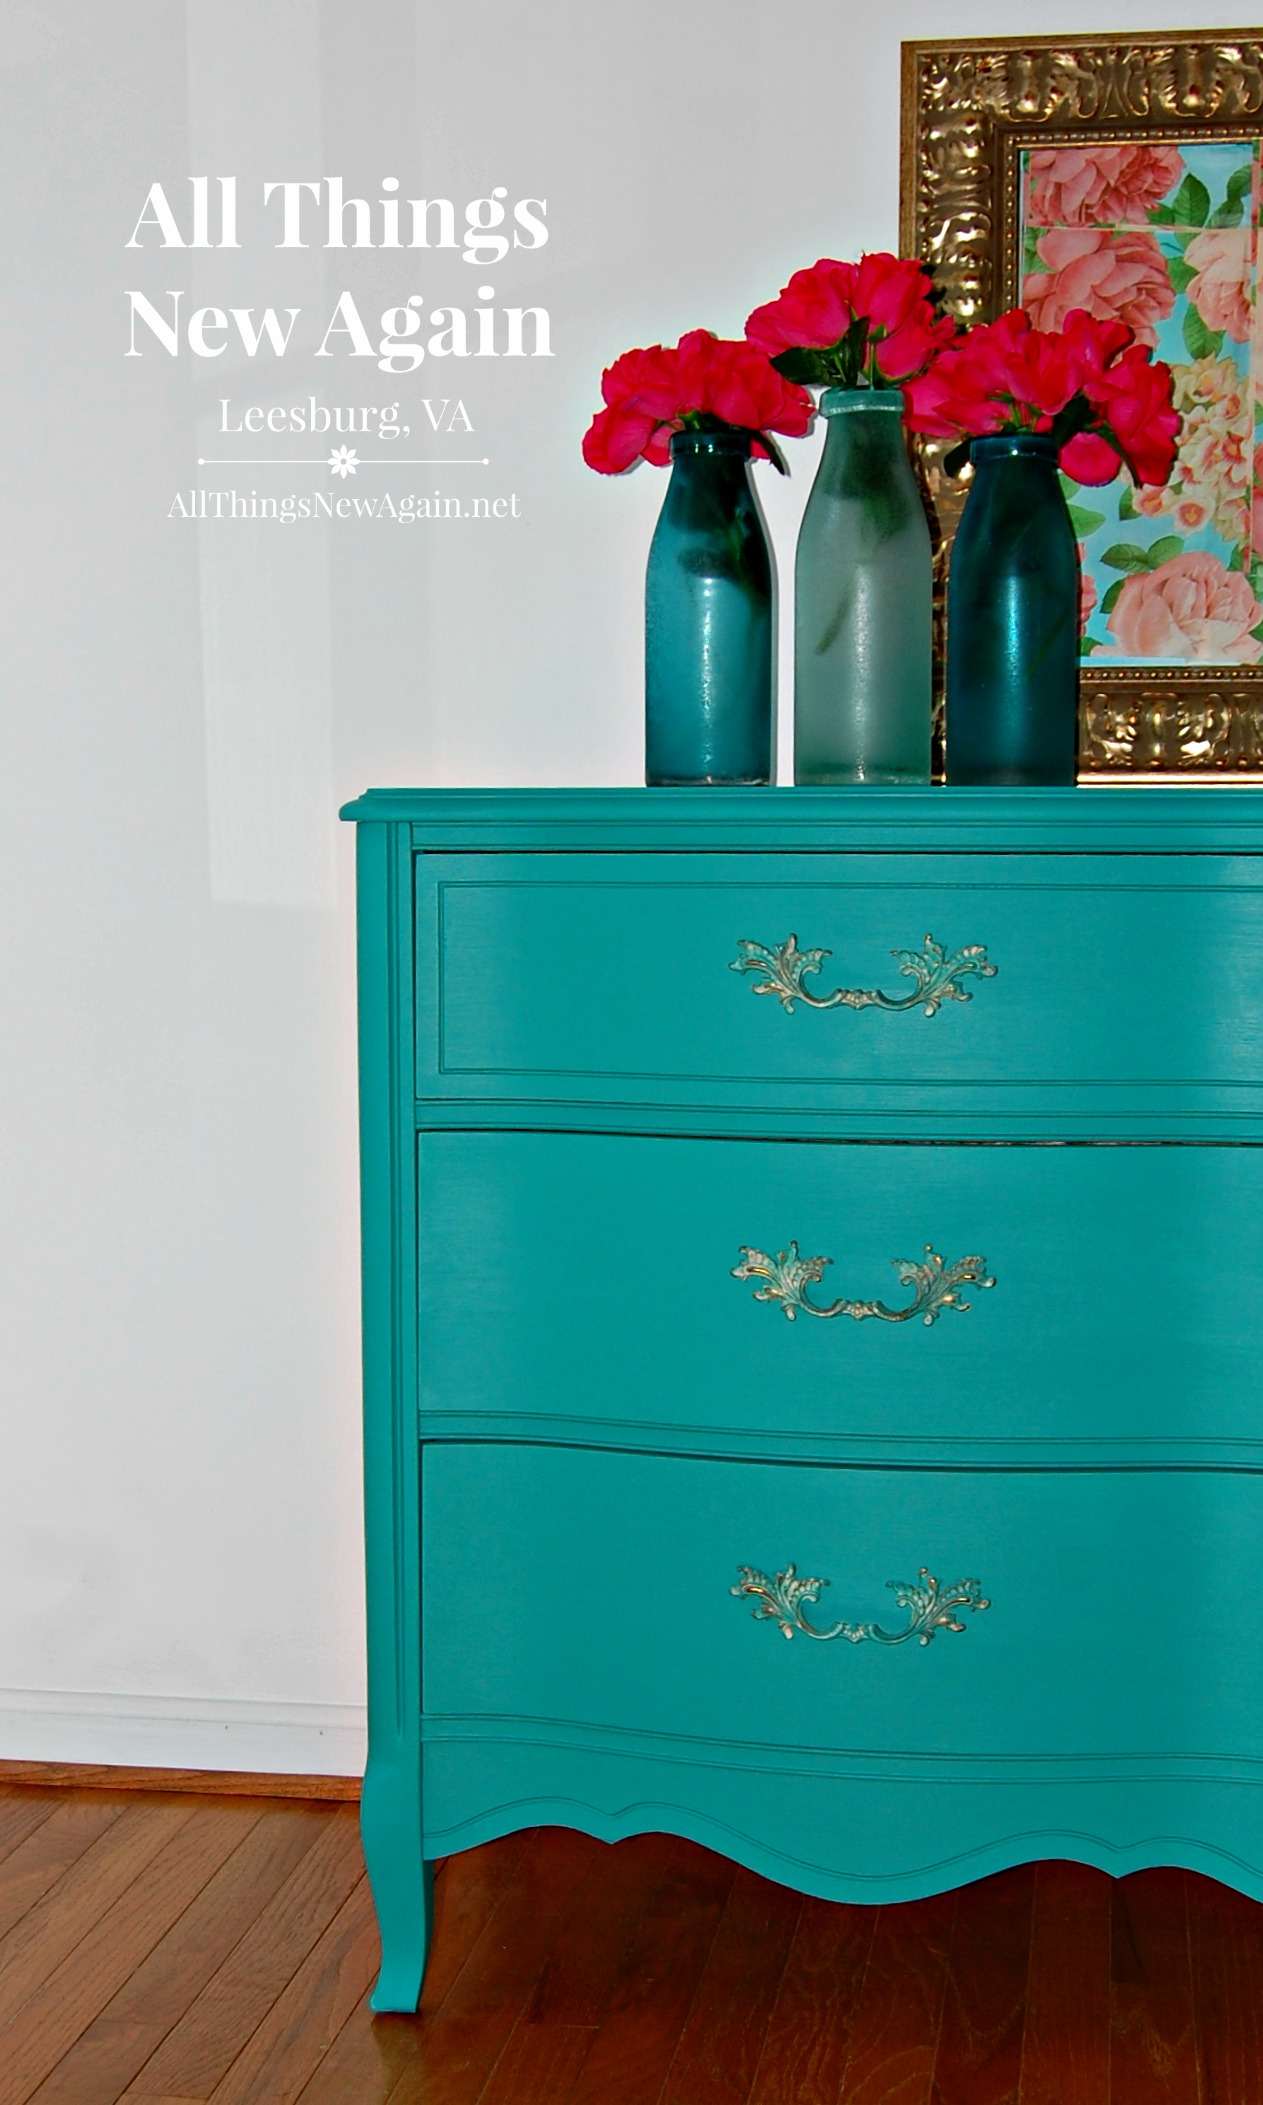 5 Gorgeous New Dixie Belle Paint Colors  Who Wants To Win Free Paint  All Things New Again